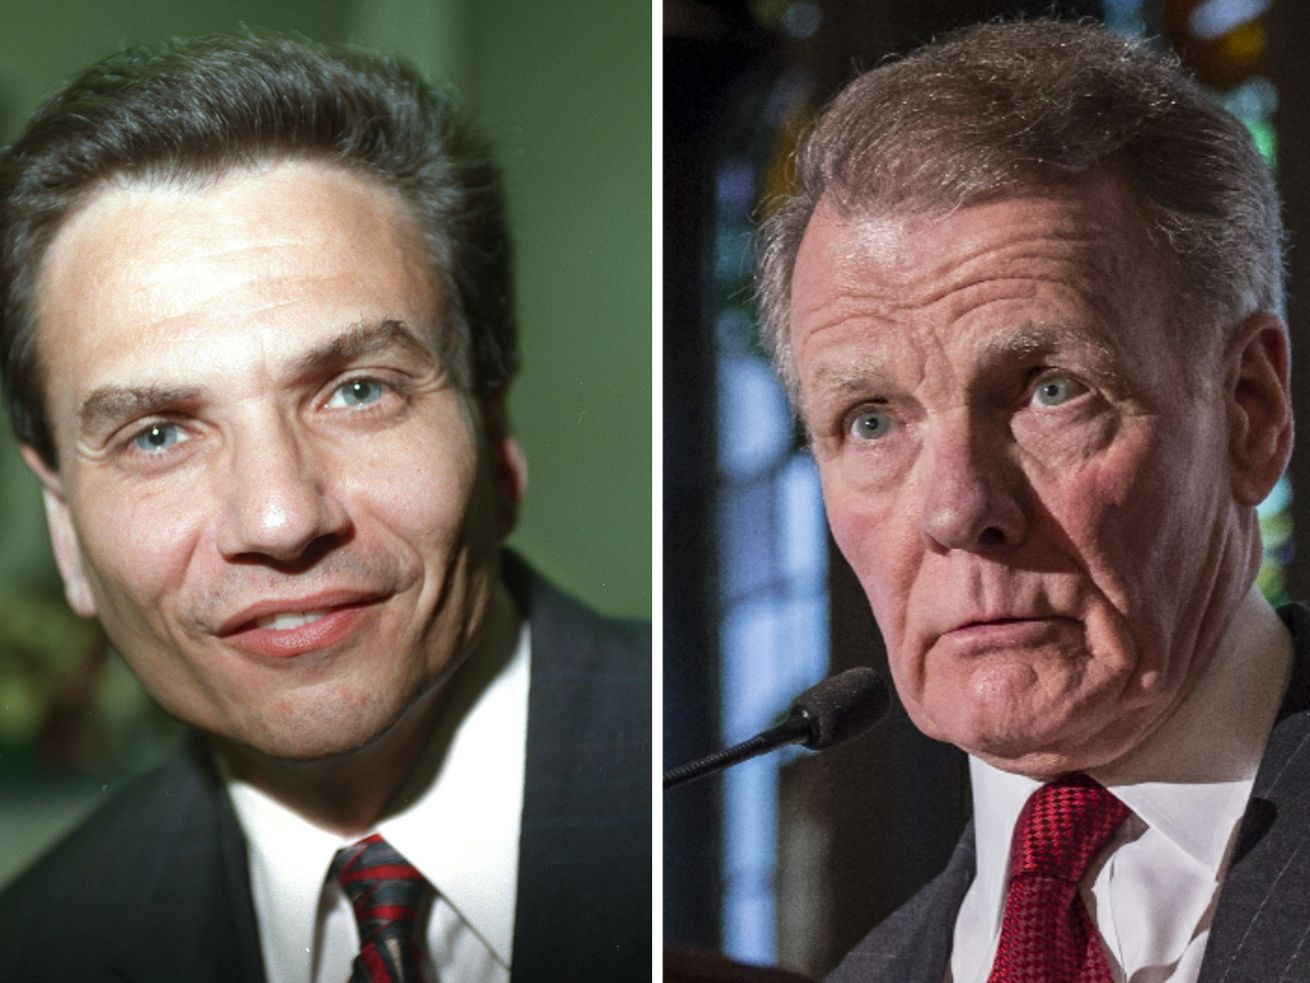 Madigan's former 13th Ward alderman implicated in ComEd scheme during House panel testimony